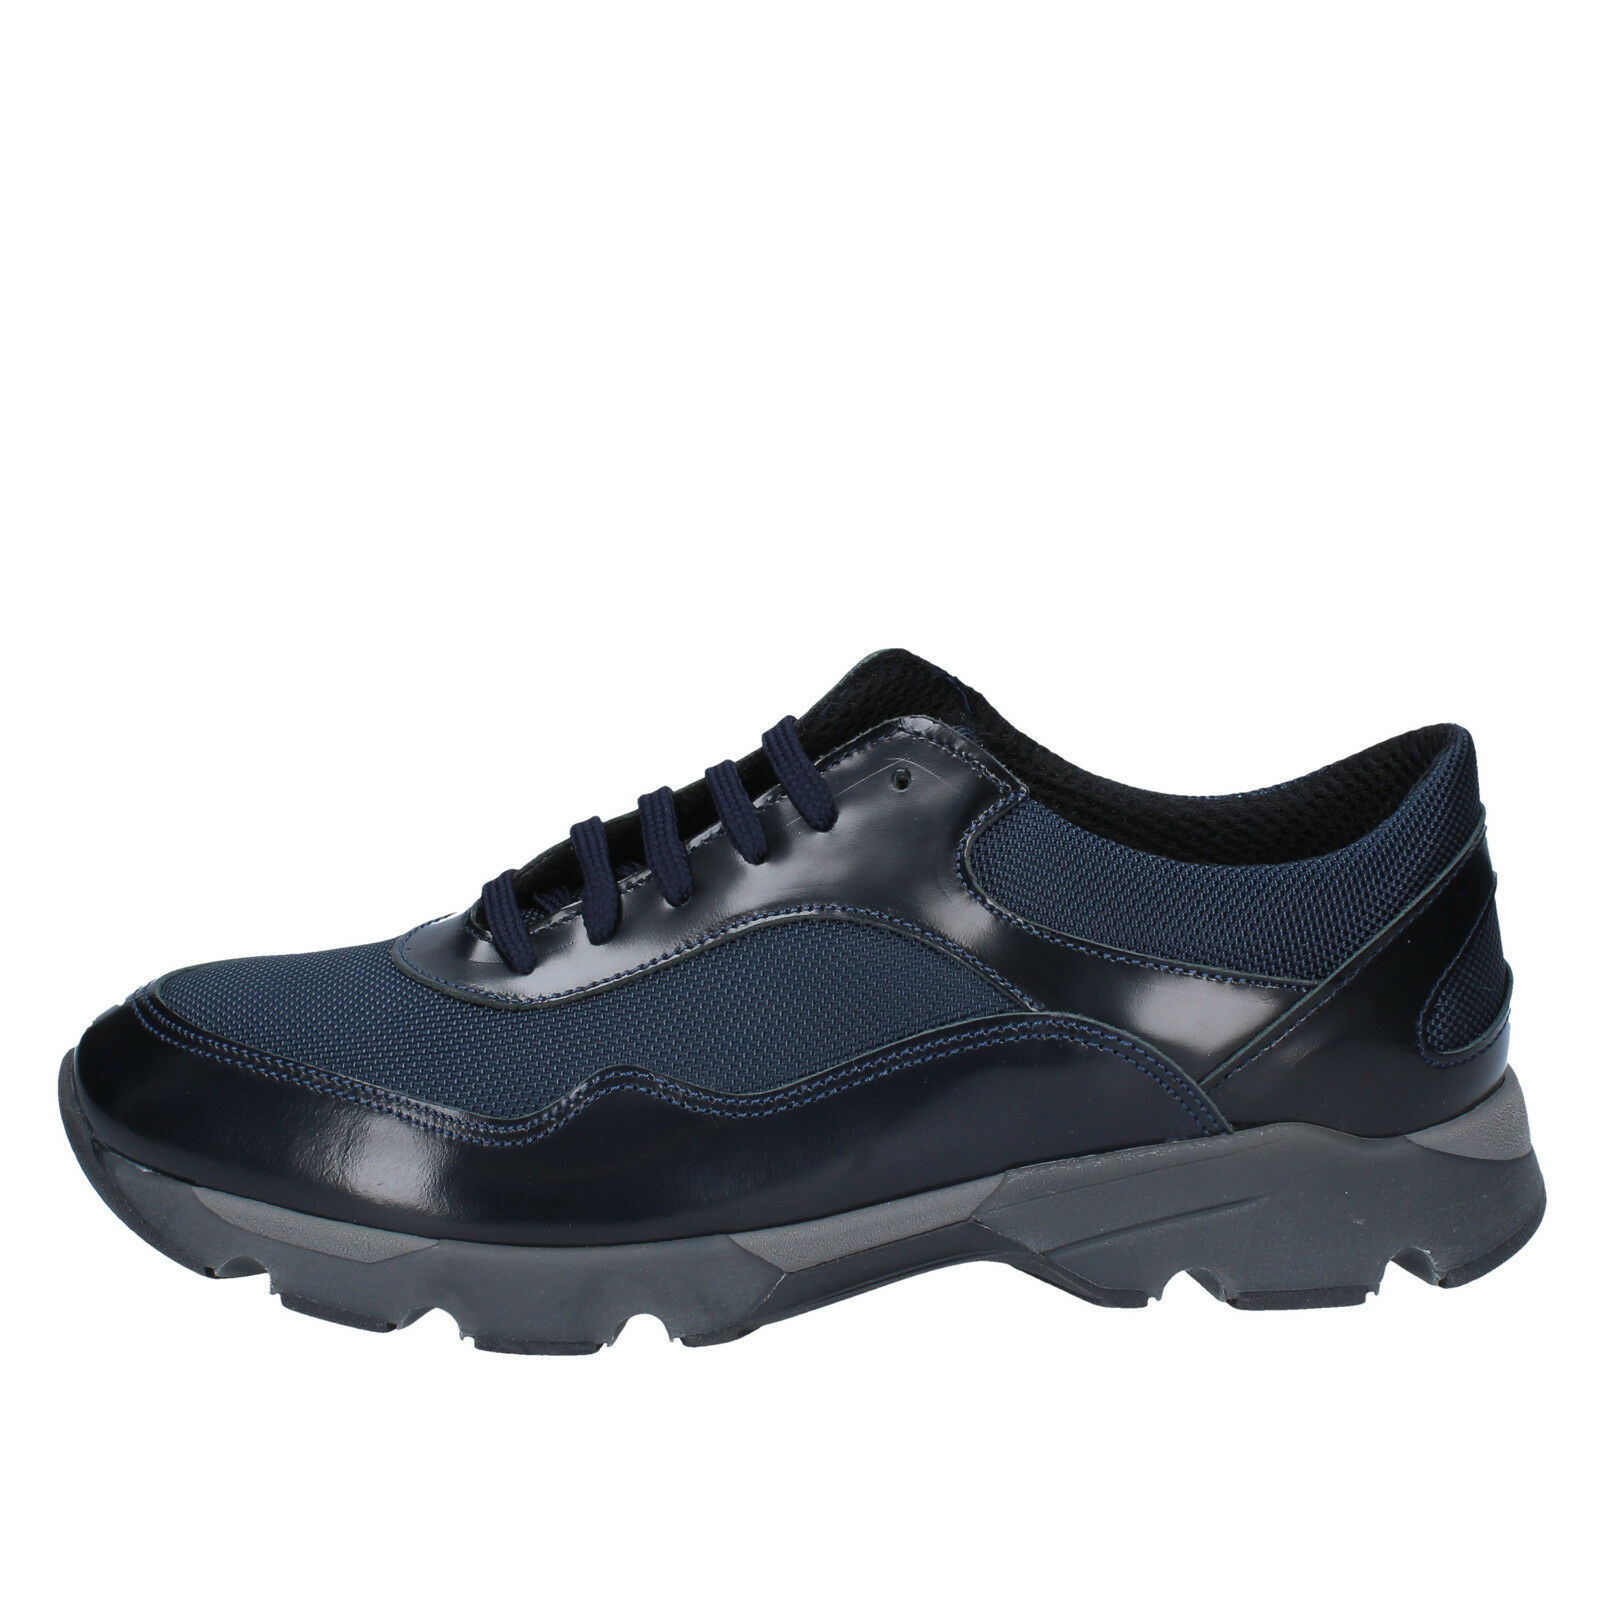 Mens shoes BALDININI 8 (EU 42) sneakers bluee textile leather BY538-42